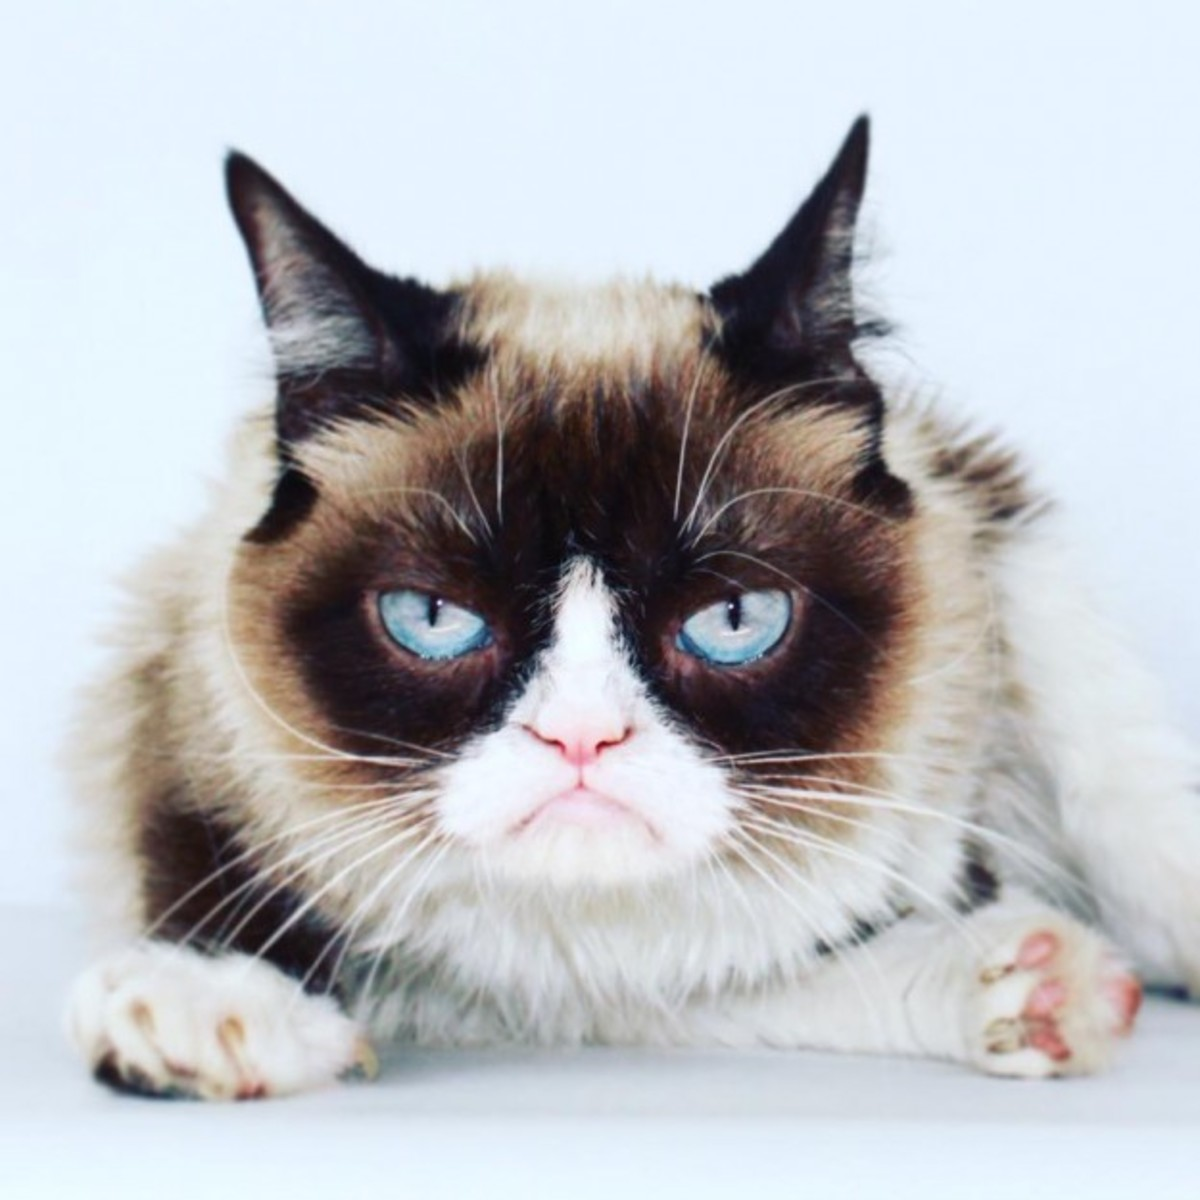 Here's the real Grumpy Cat - Isn't he adorable?